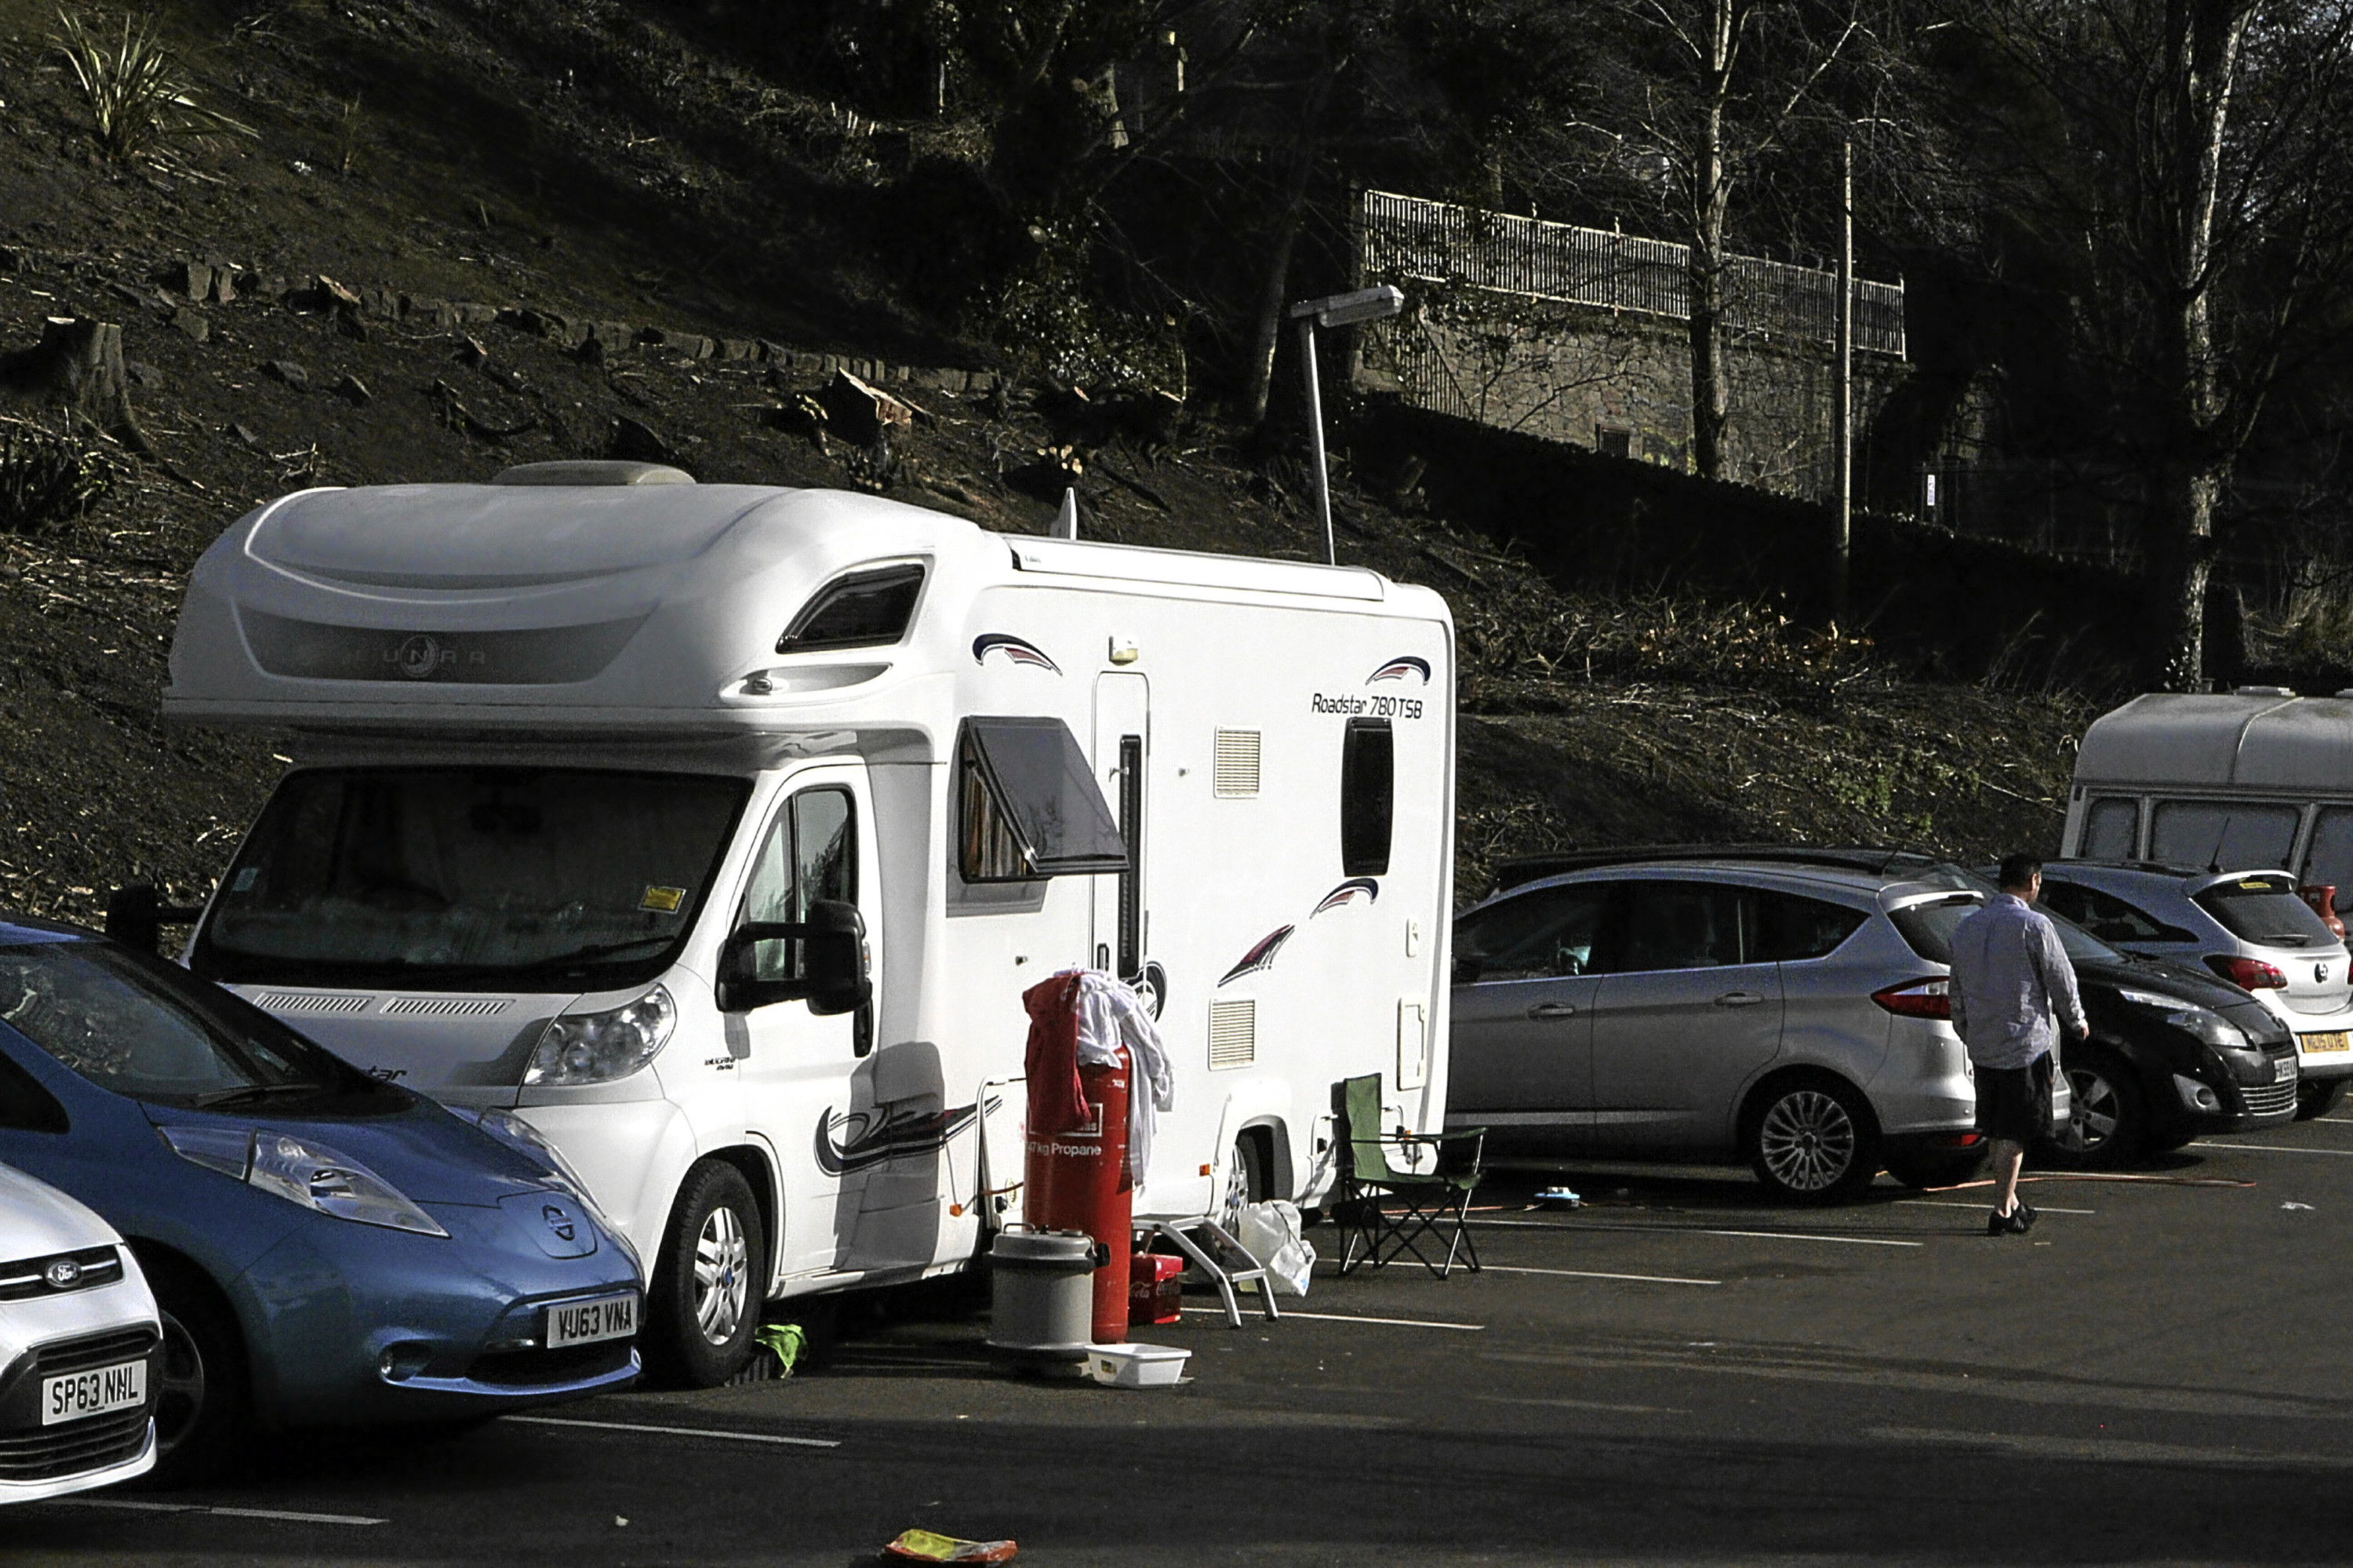 Travellers have pitched up at a university car park on Seabraes Lane in Dundee.